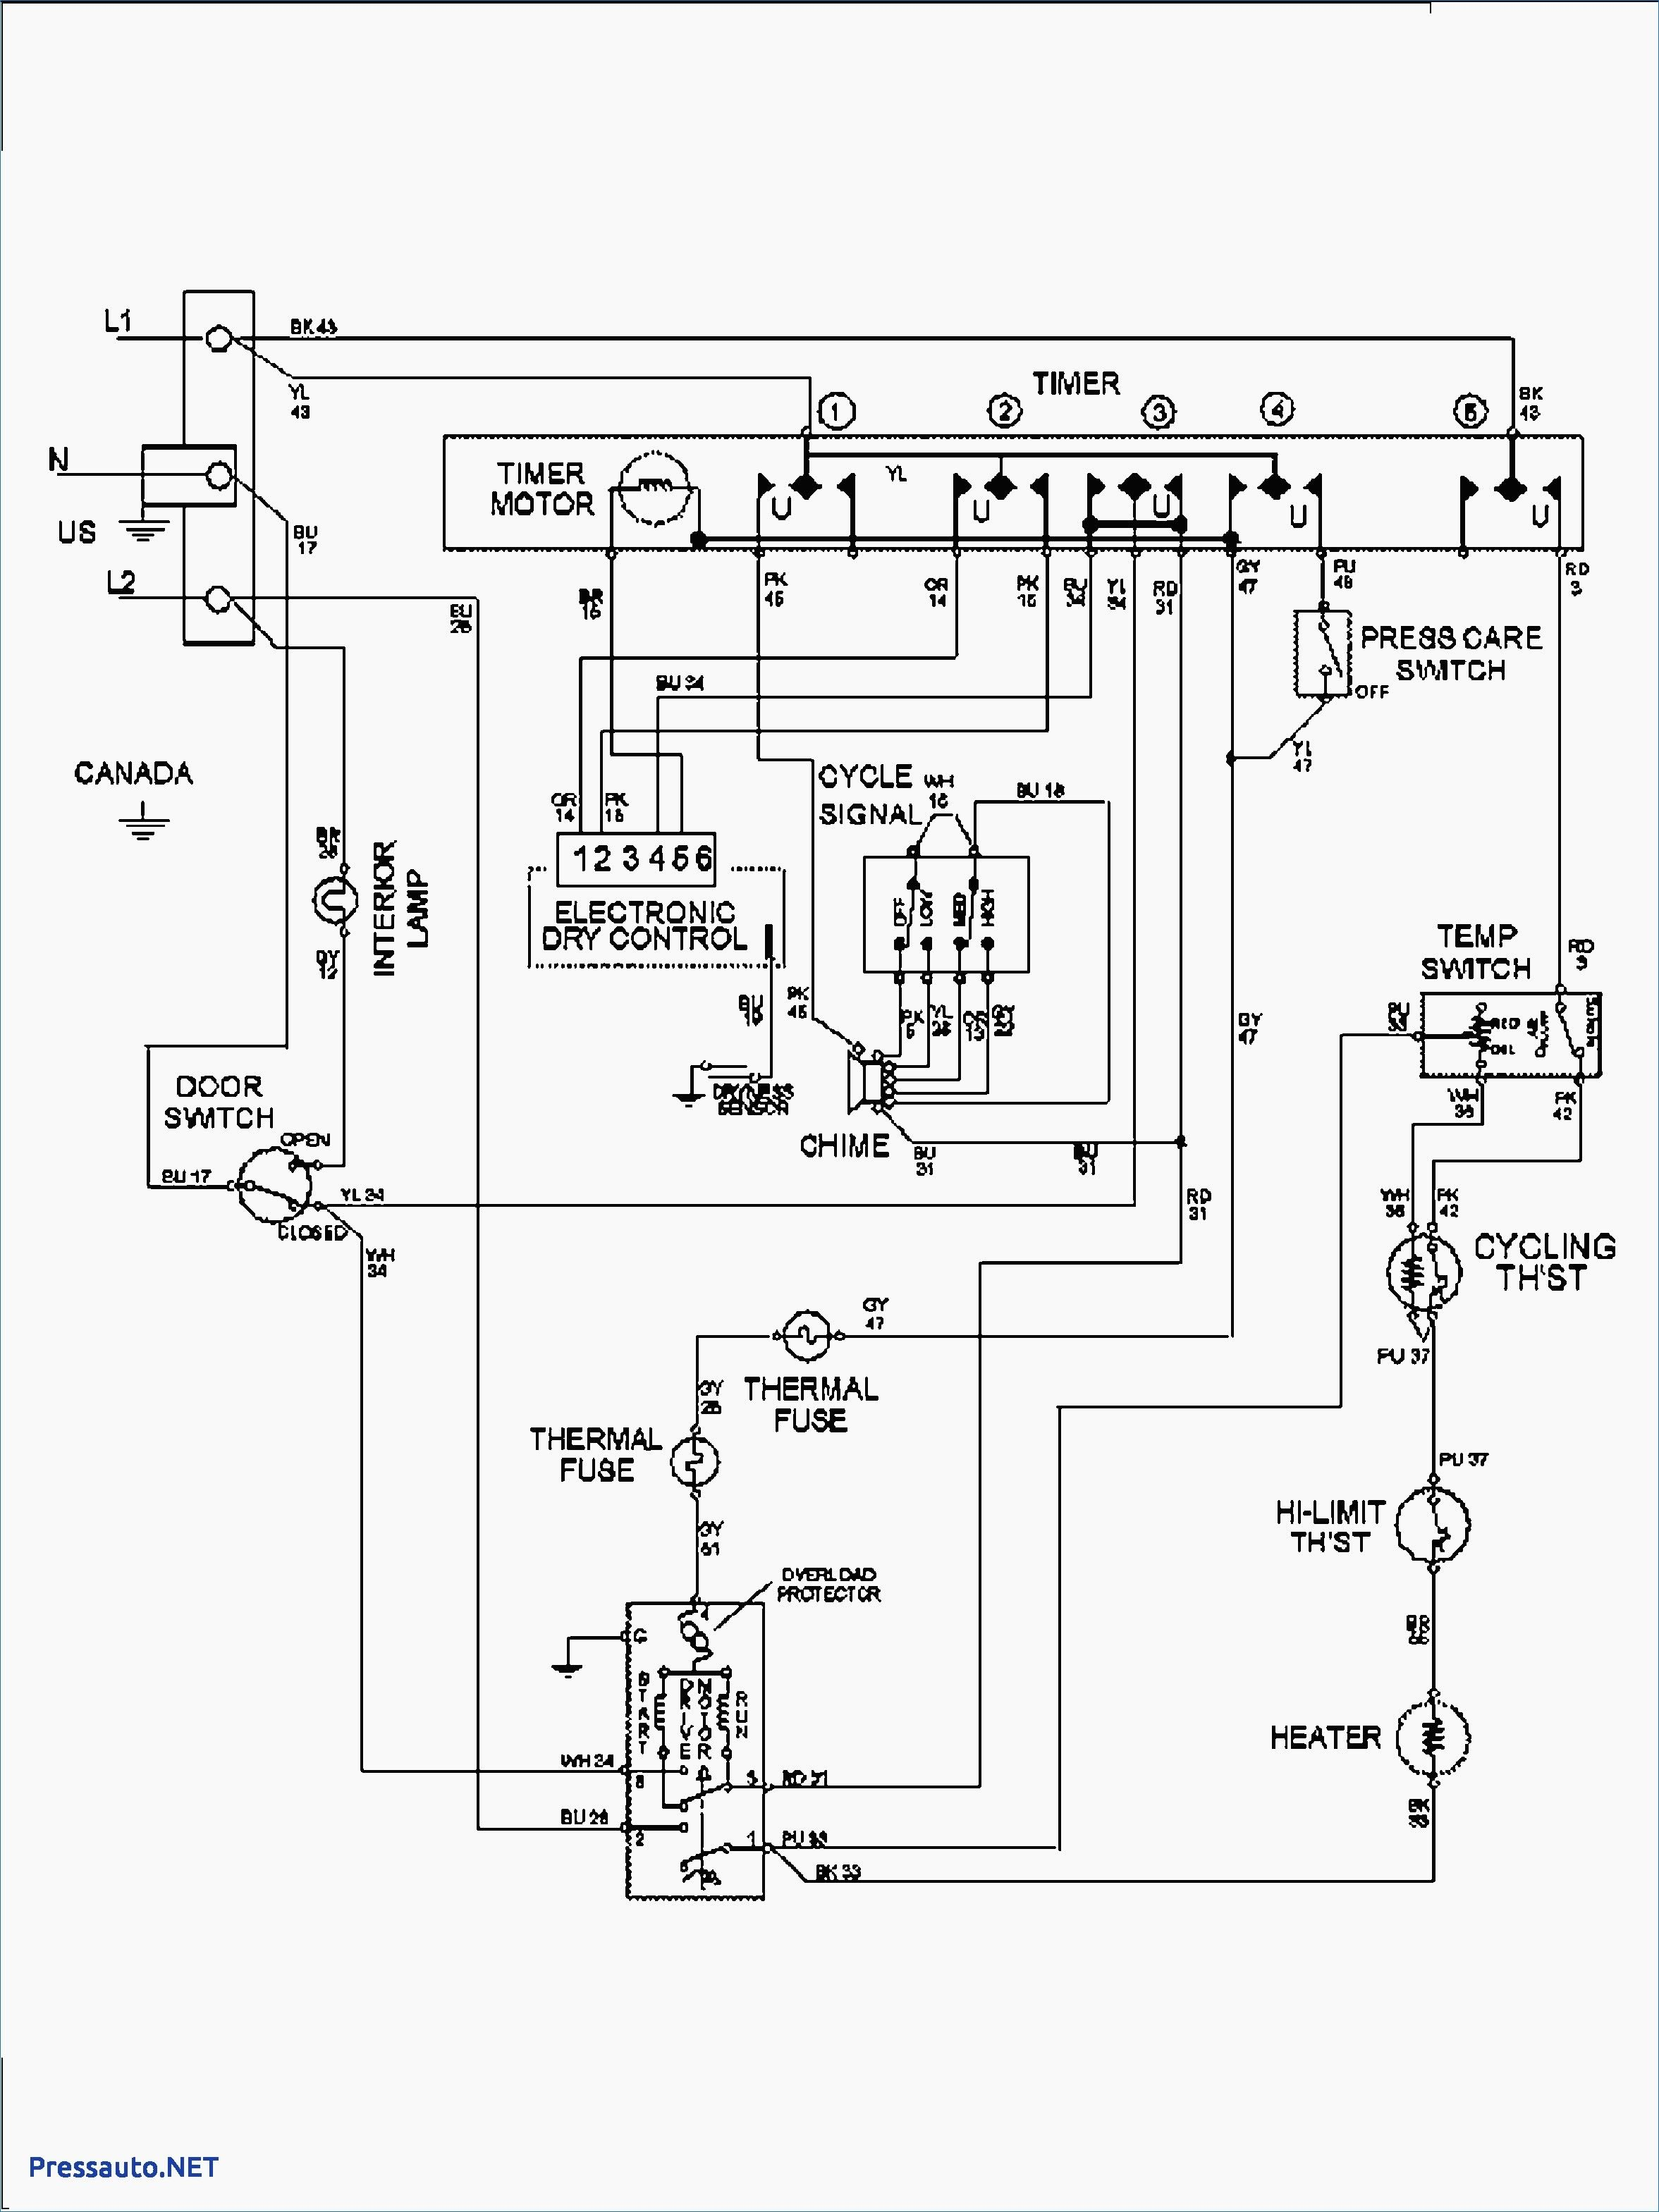 Wiring Diagram Of Washing Machine With Dryer - bookingritzcarlton.info |  Electric dryers, Maytag dryer, Washing machine and dryer Pinterest